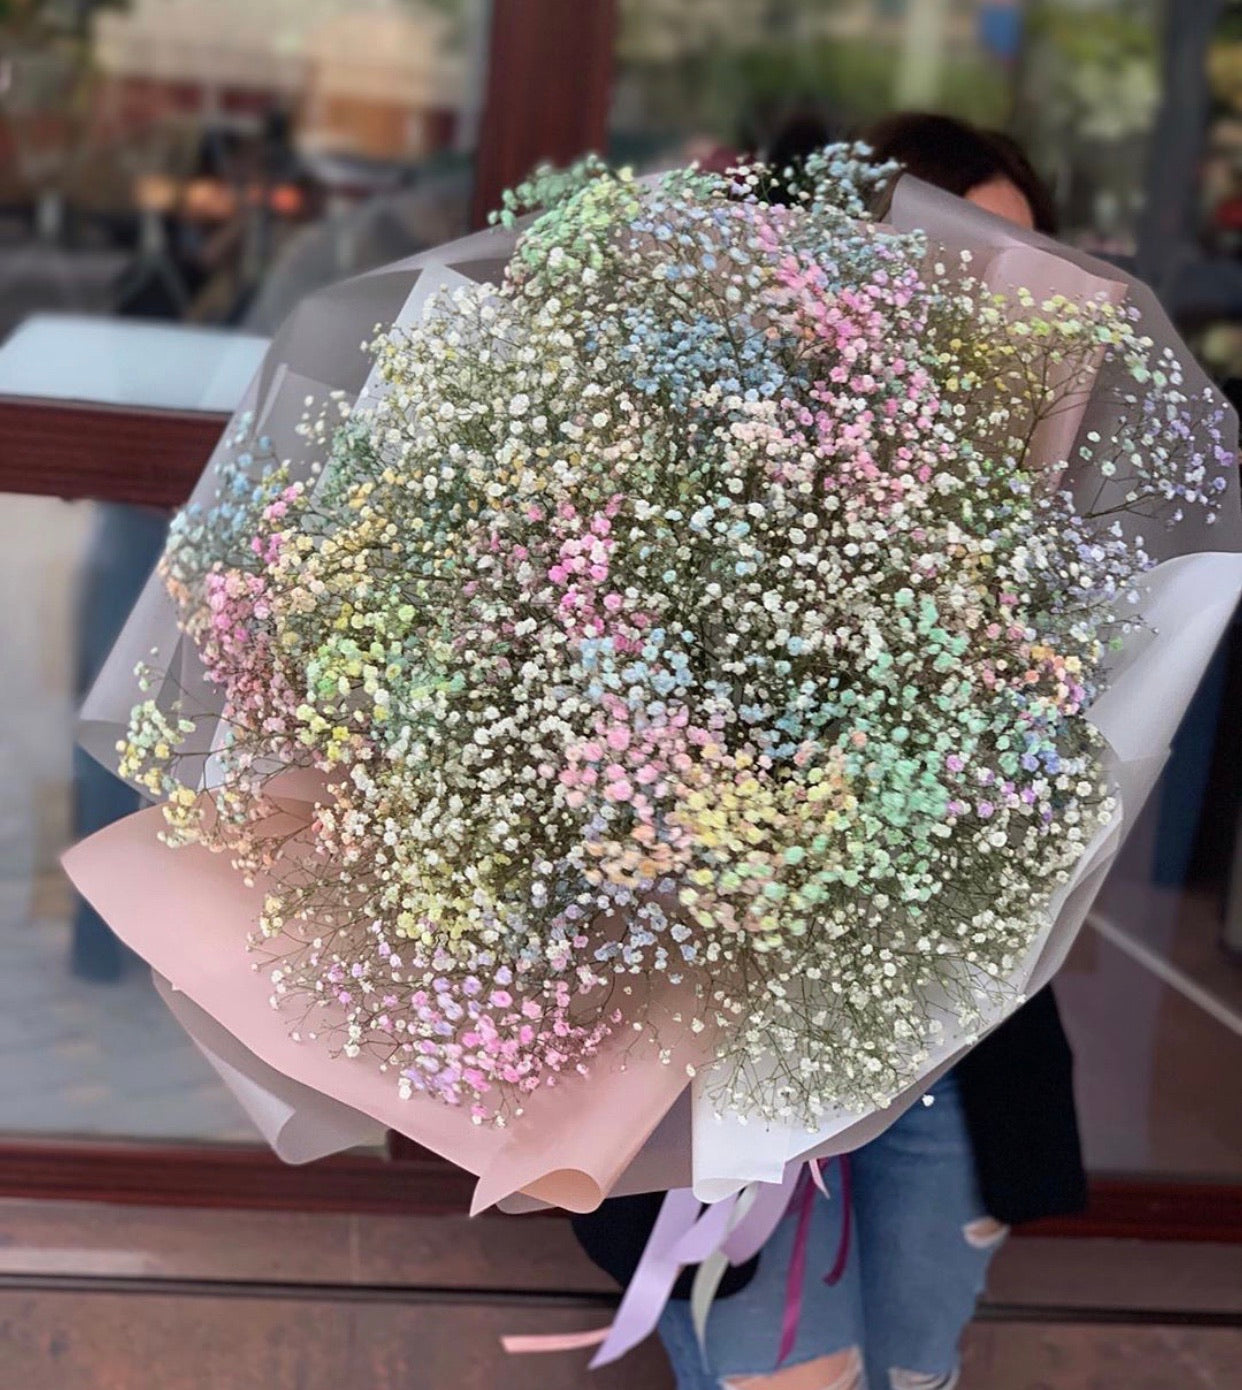 Rainbow baby's breath cloud